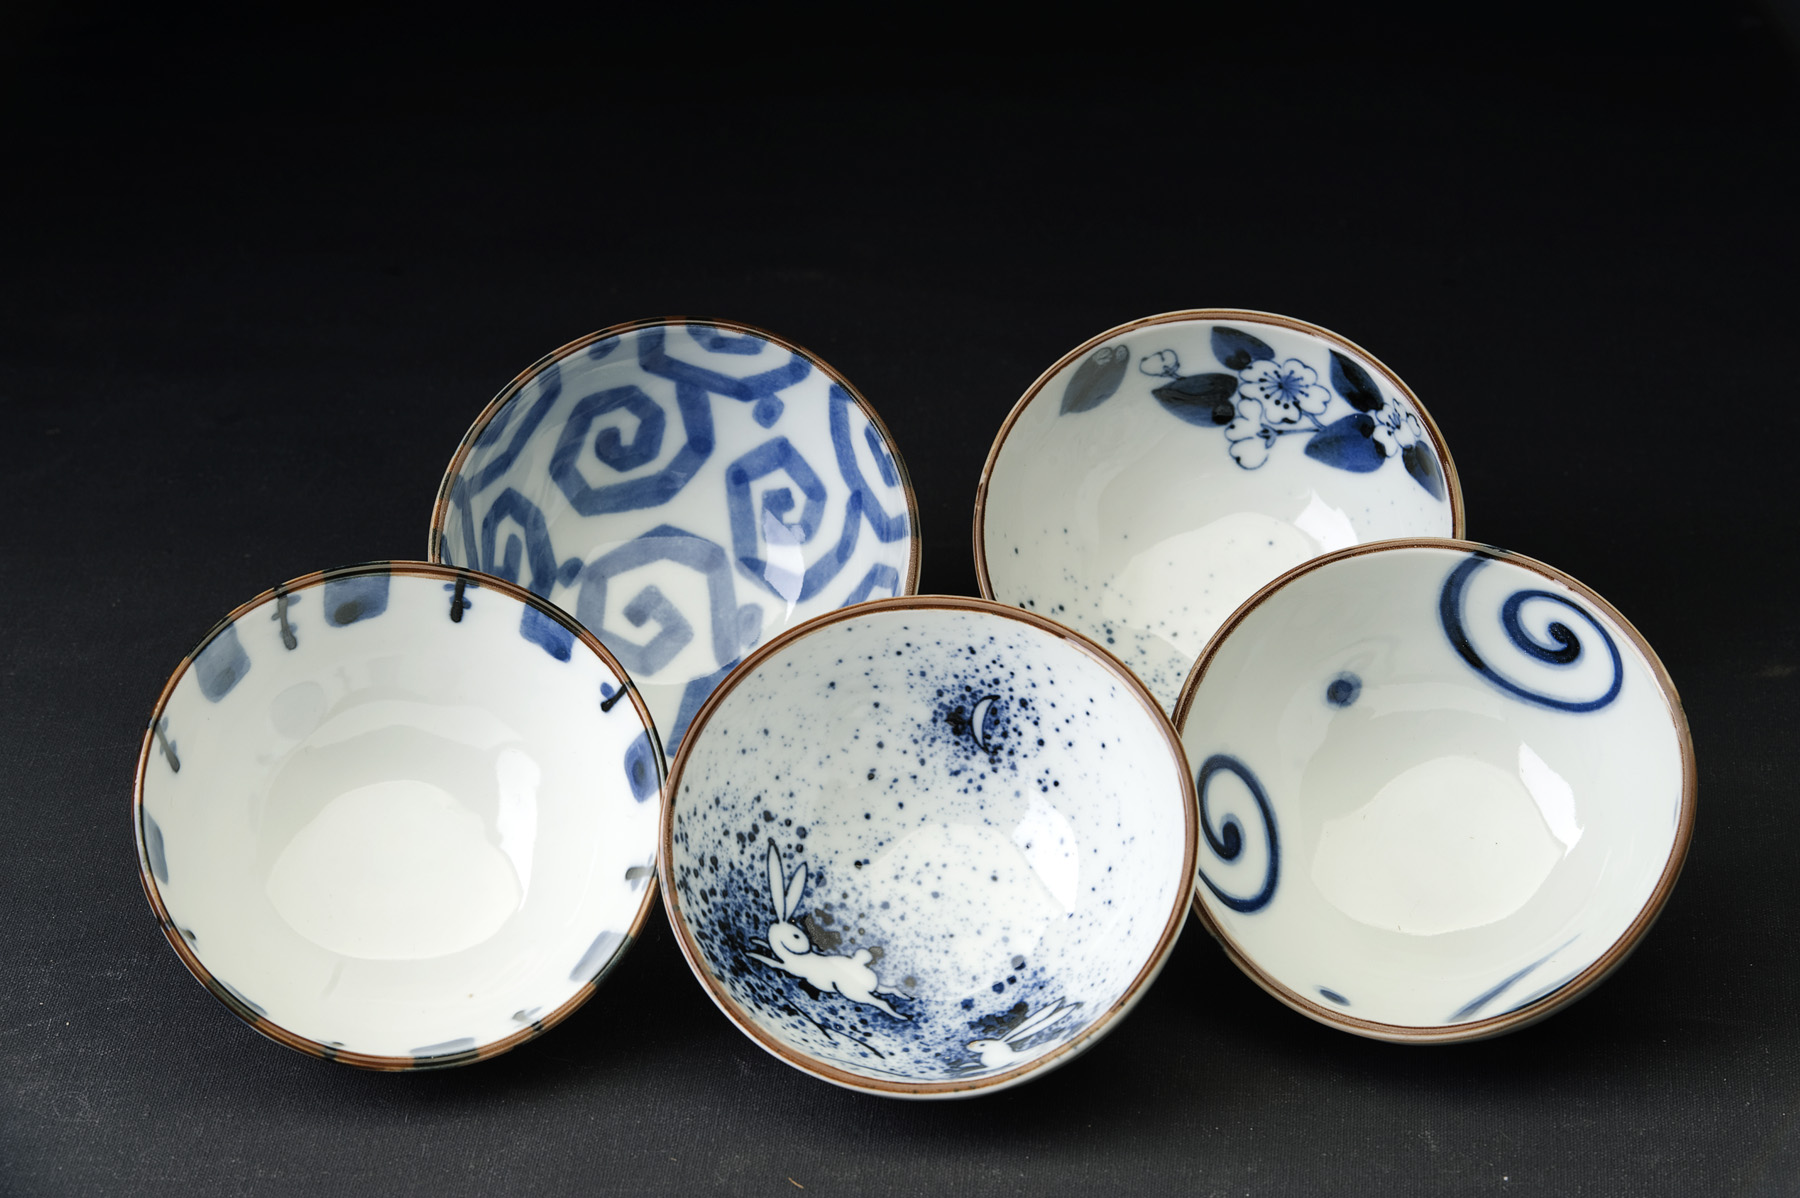 Somekoubou Set of 5 Bowls